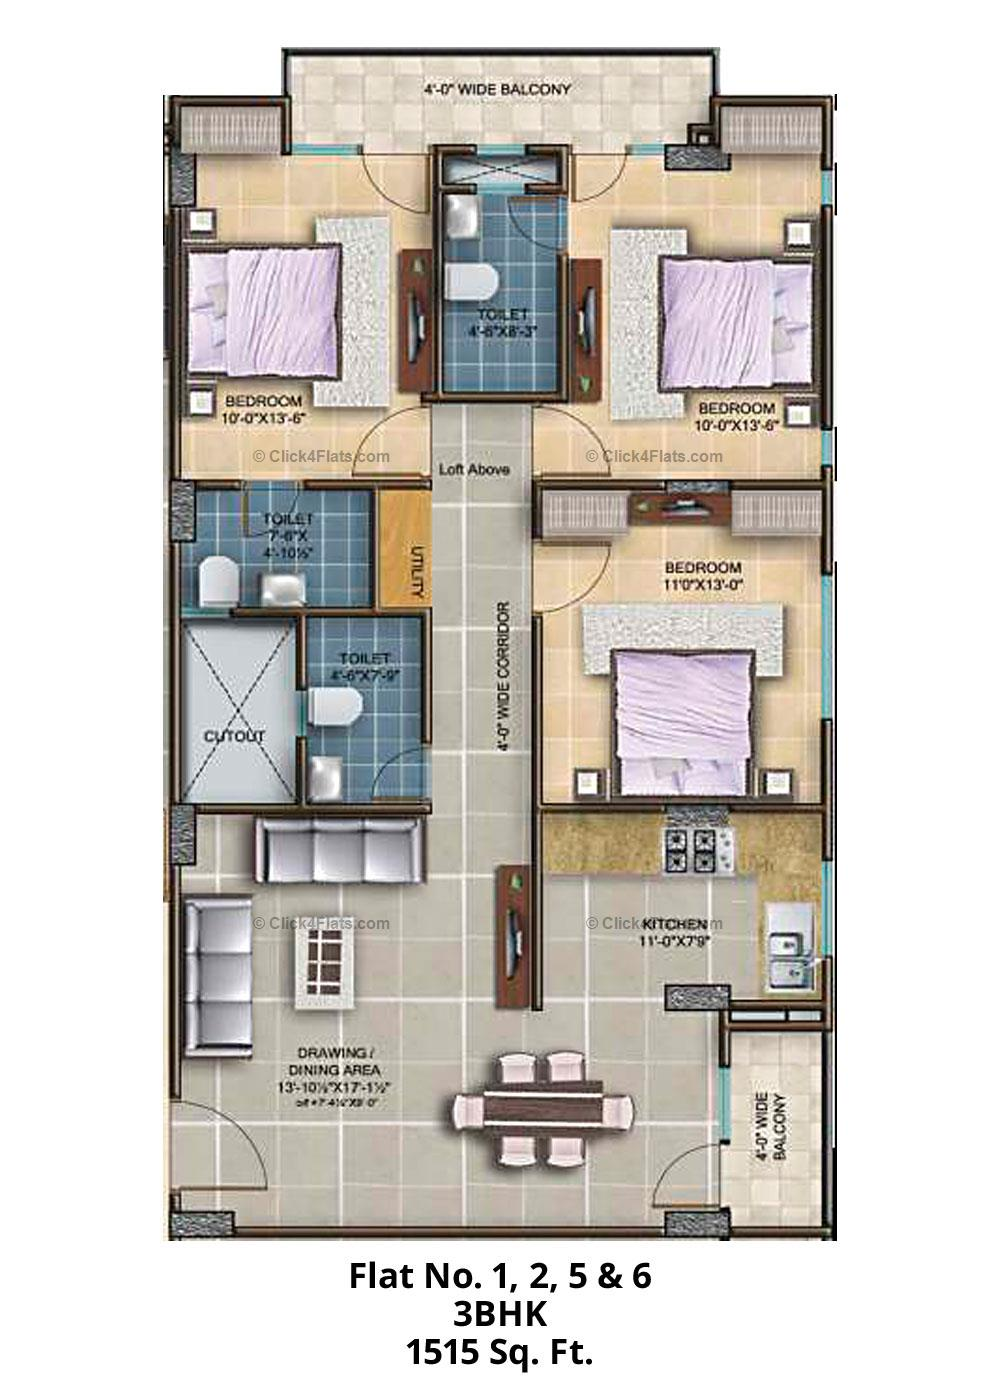 The Royal Twins 3 BHK